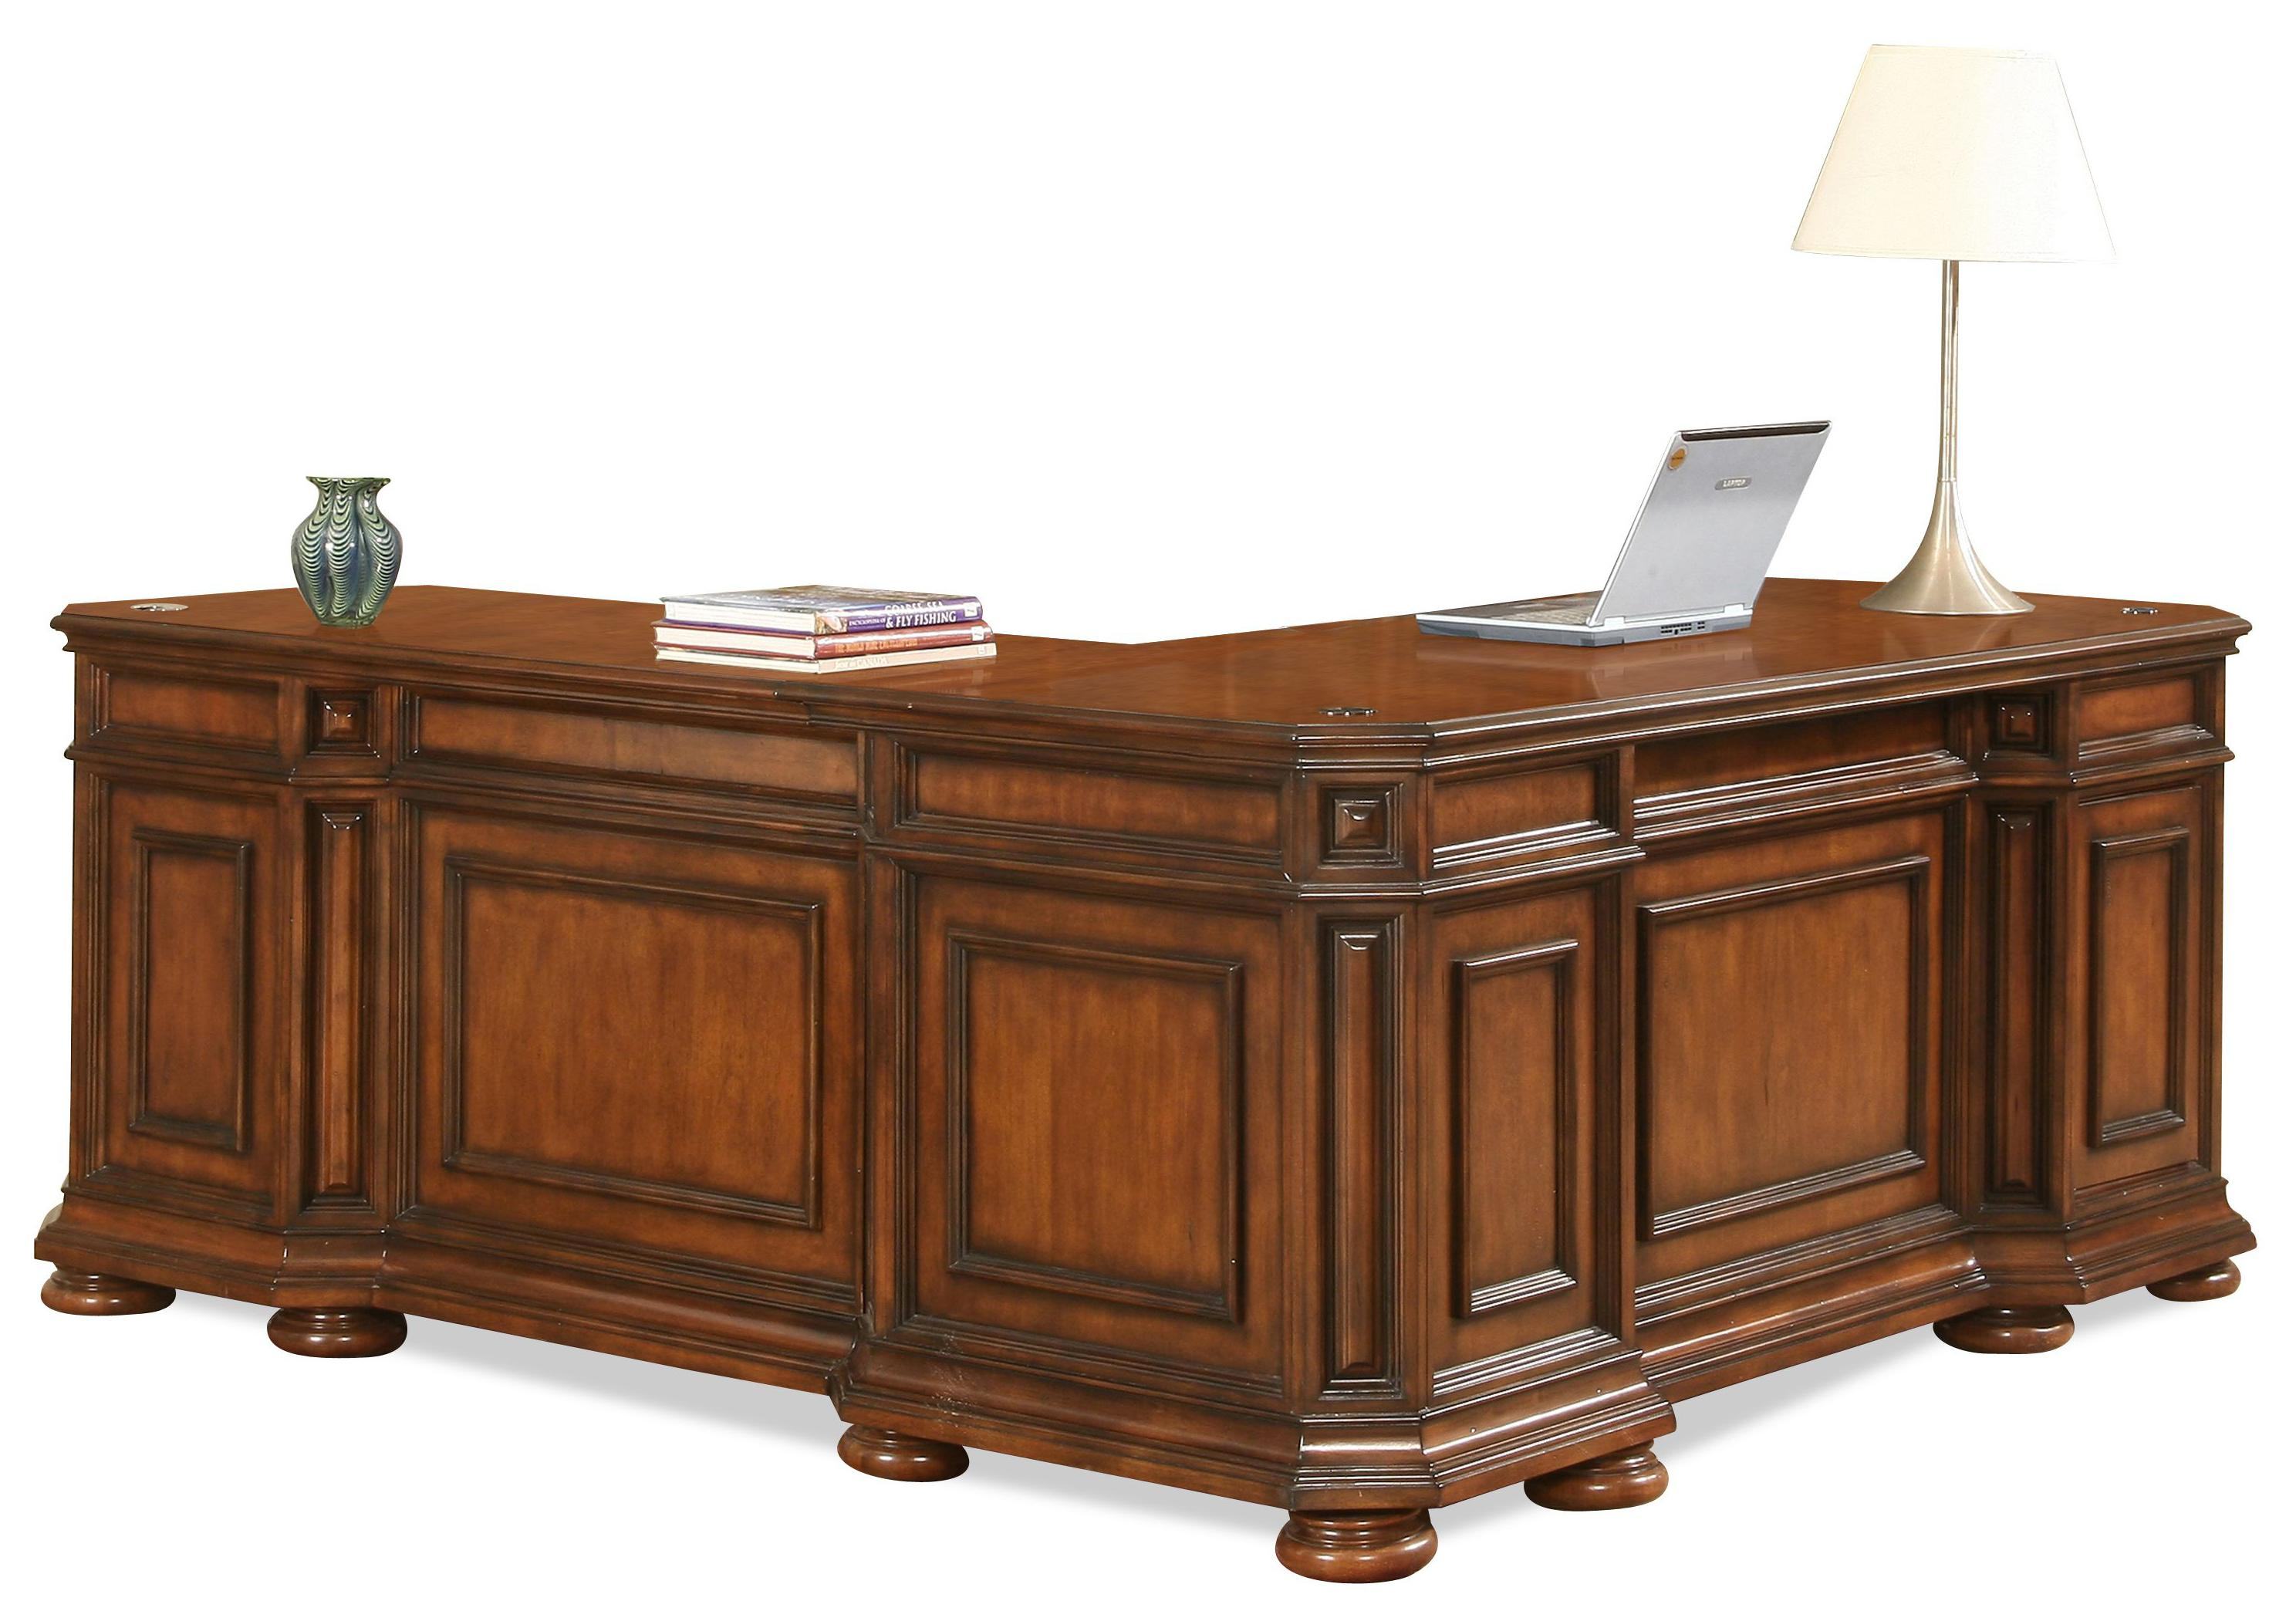 Riverside Furniture Cantata L Desk & Return - Item Number: 4928